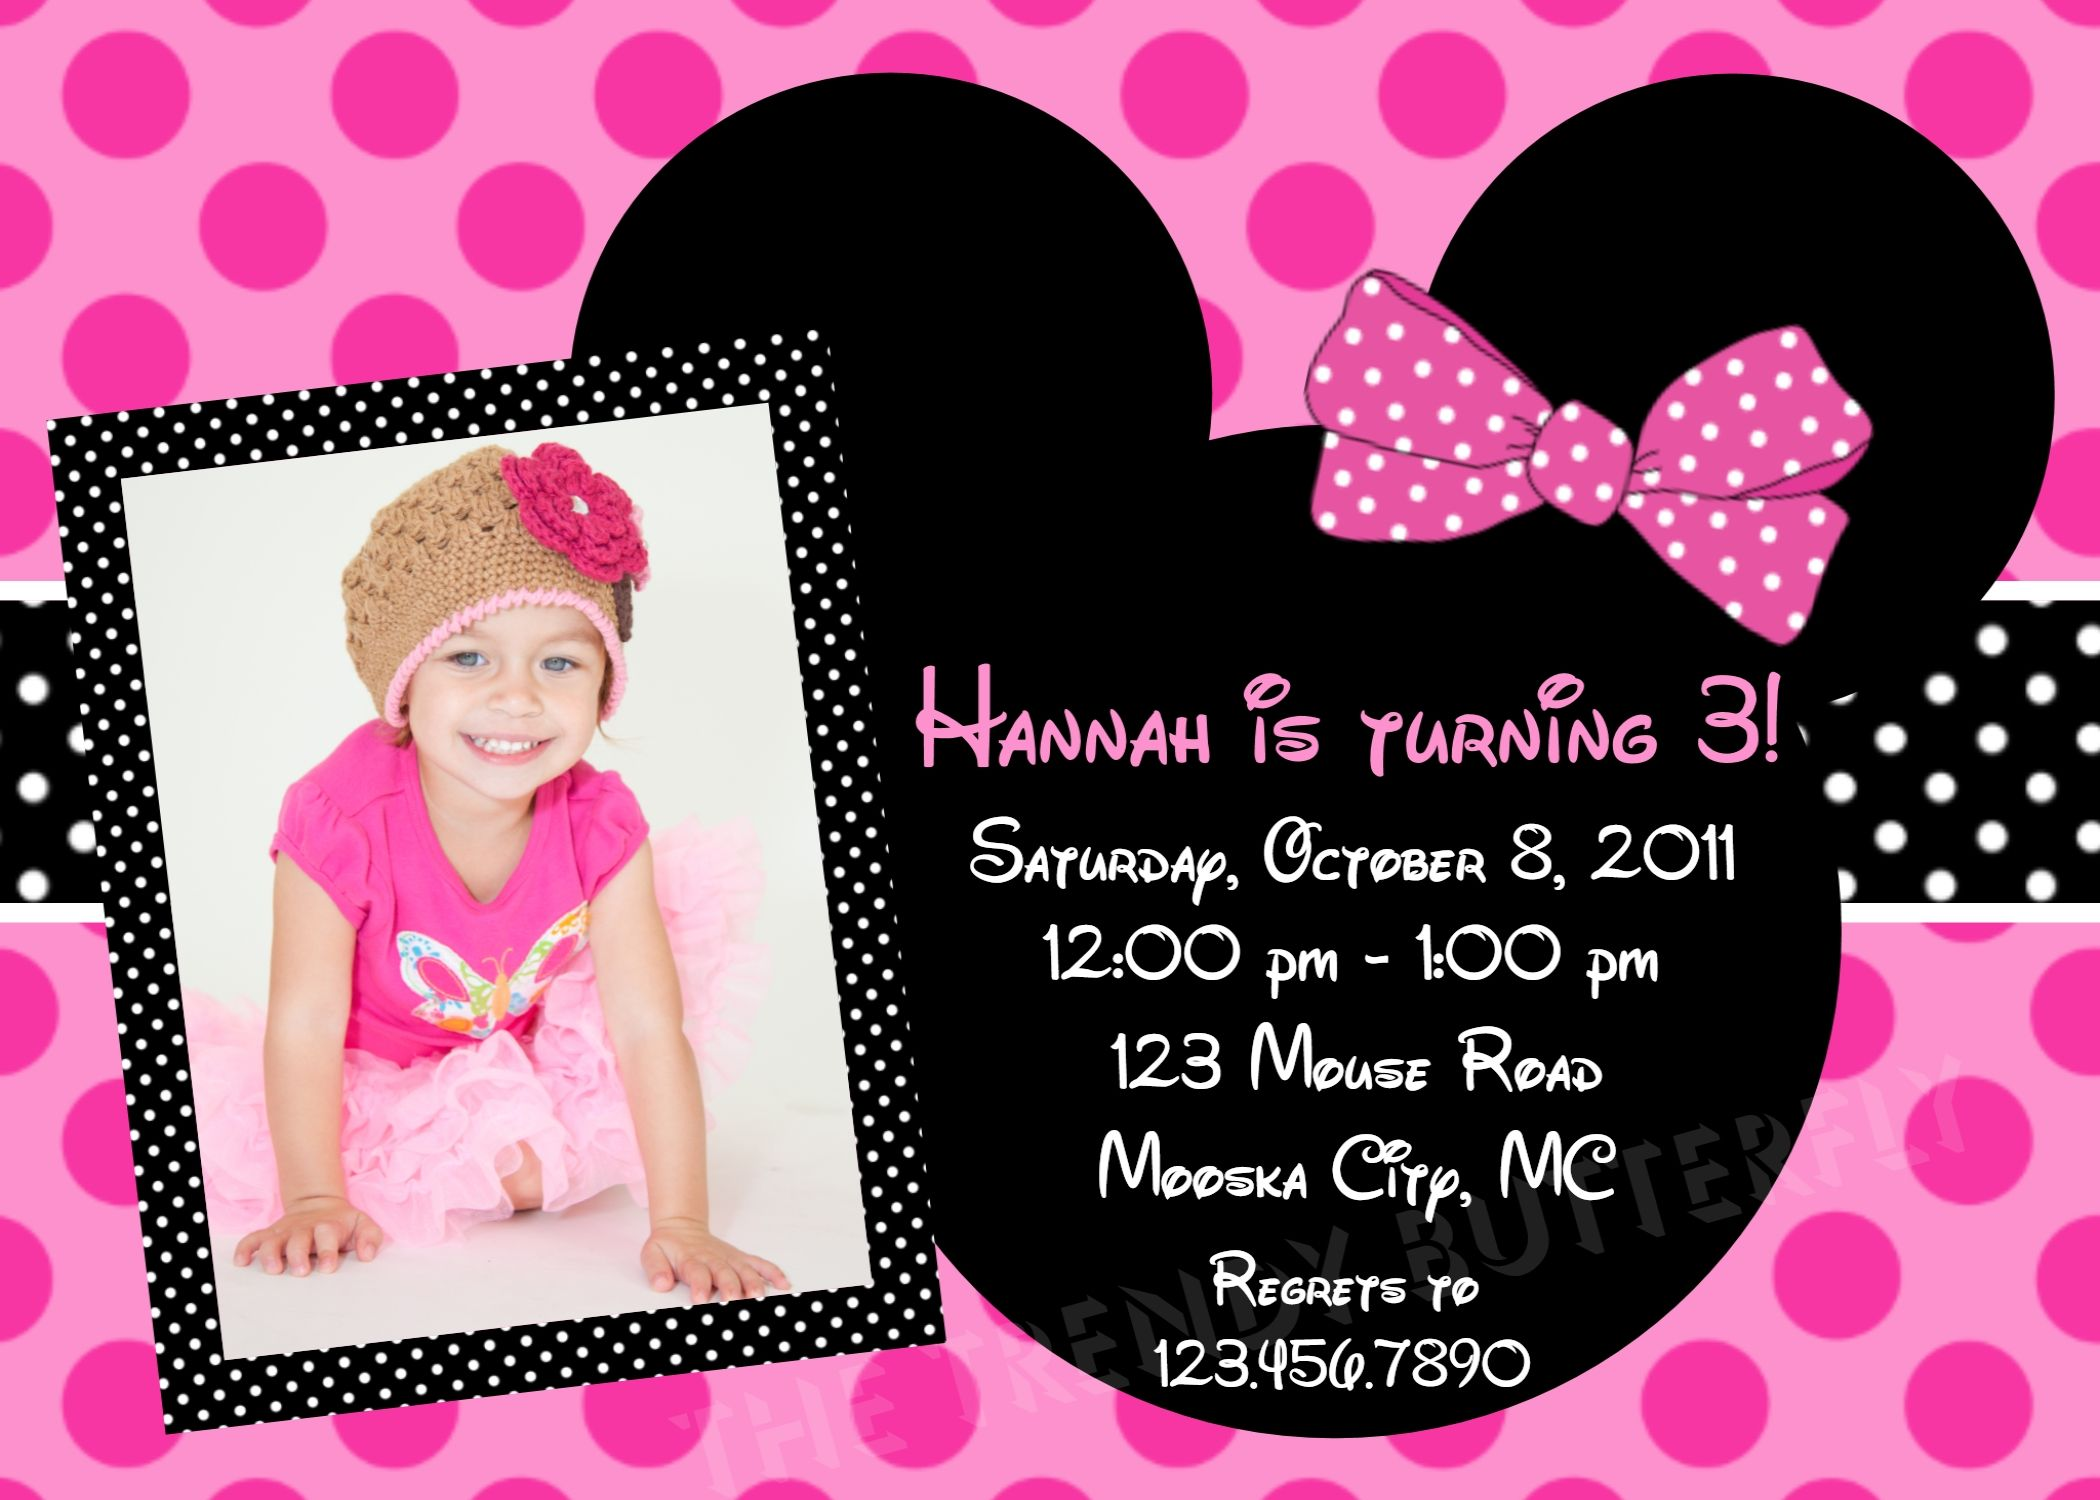 custom birthday invitations free - Etame.mibawa.co